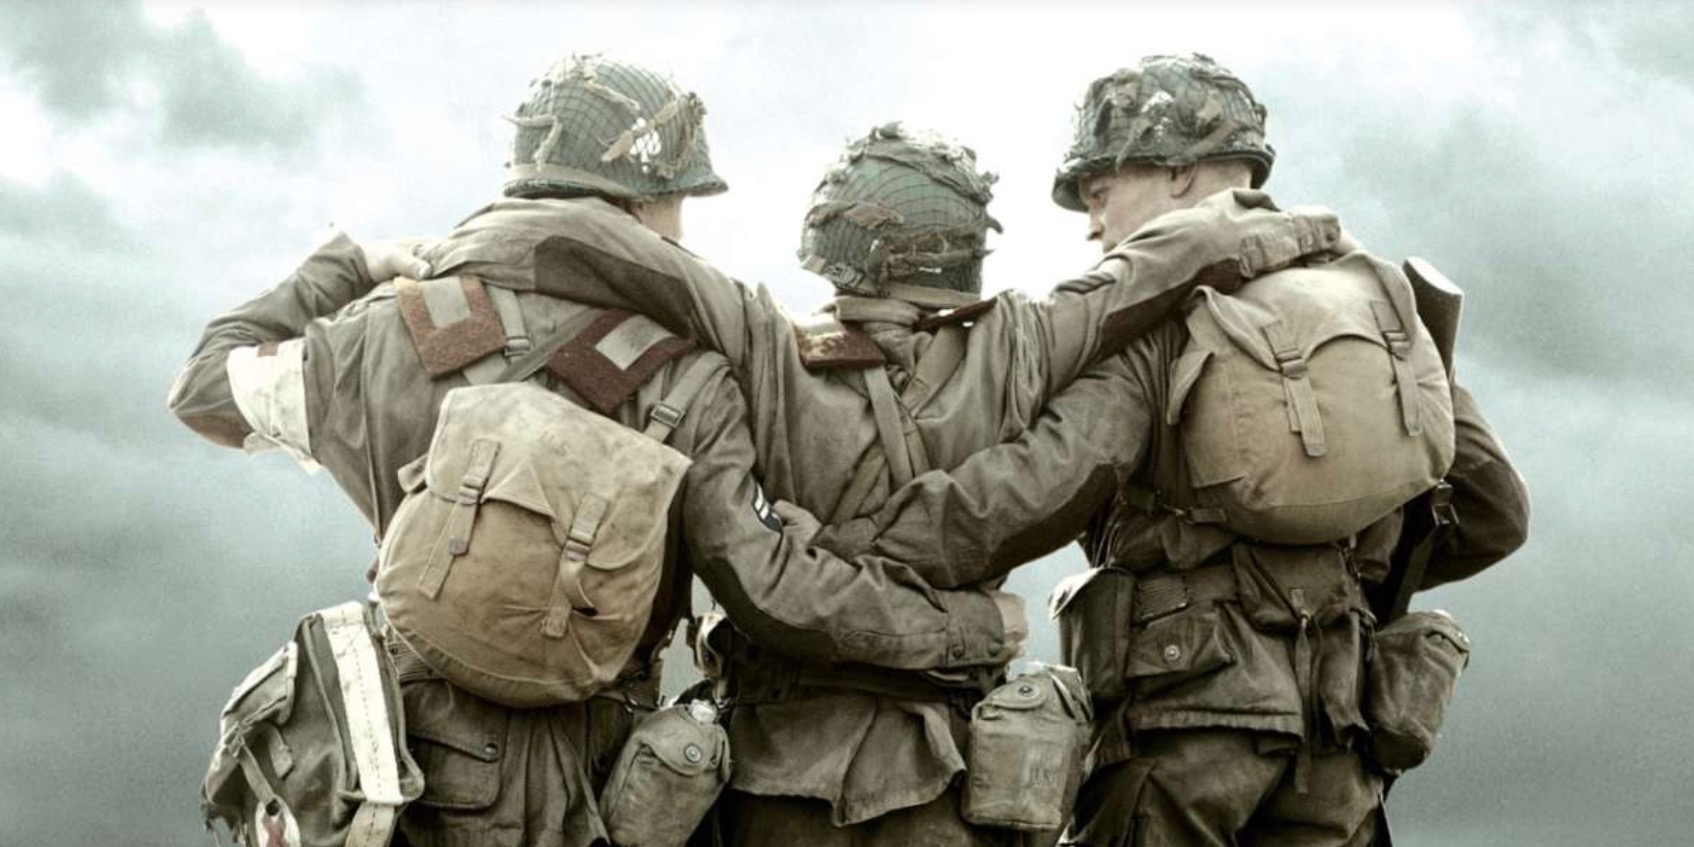 Apple kickstarts its in-house studio with order for 'Band of Brothers' follow-up, 'Masters of the Air'